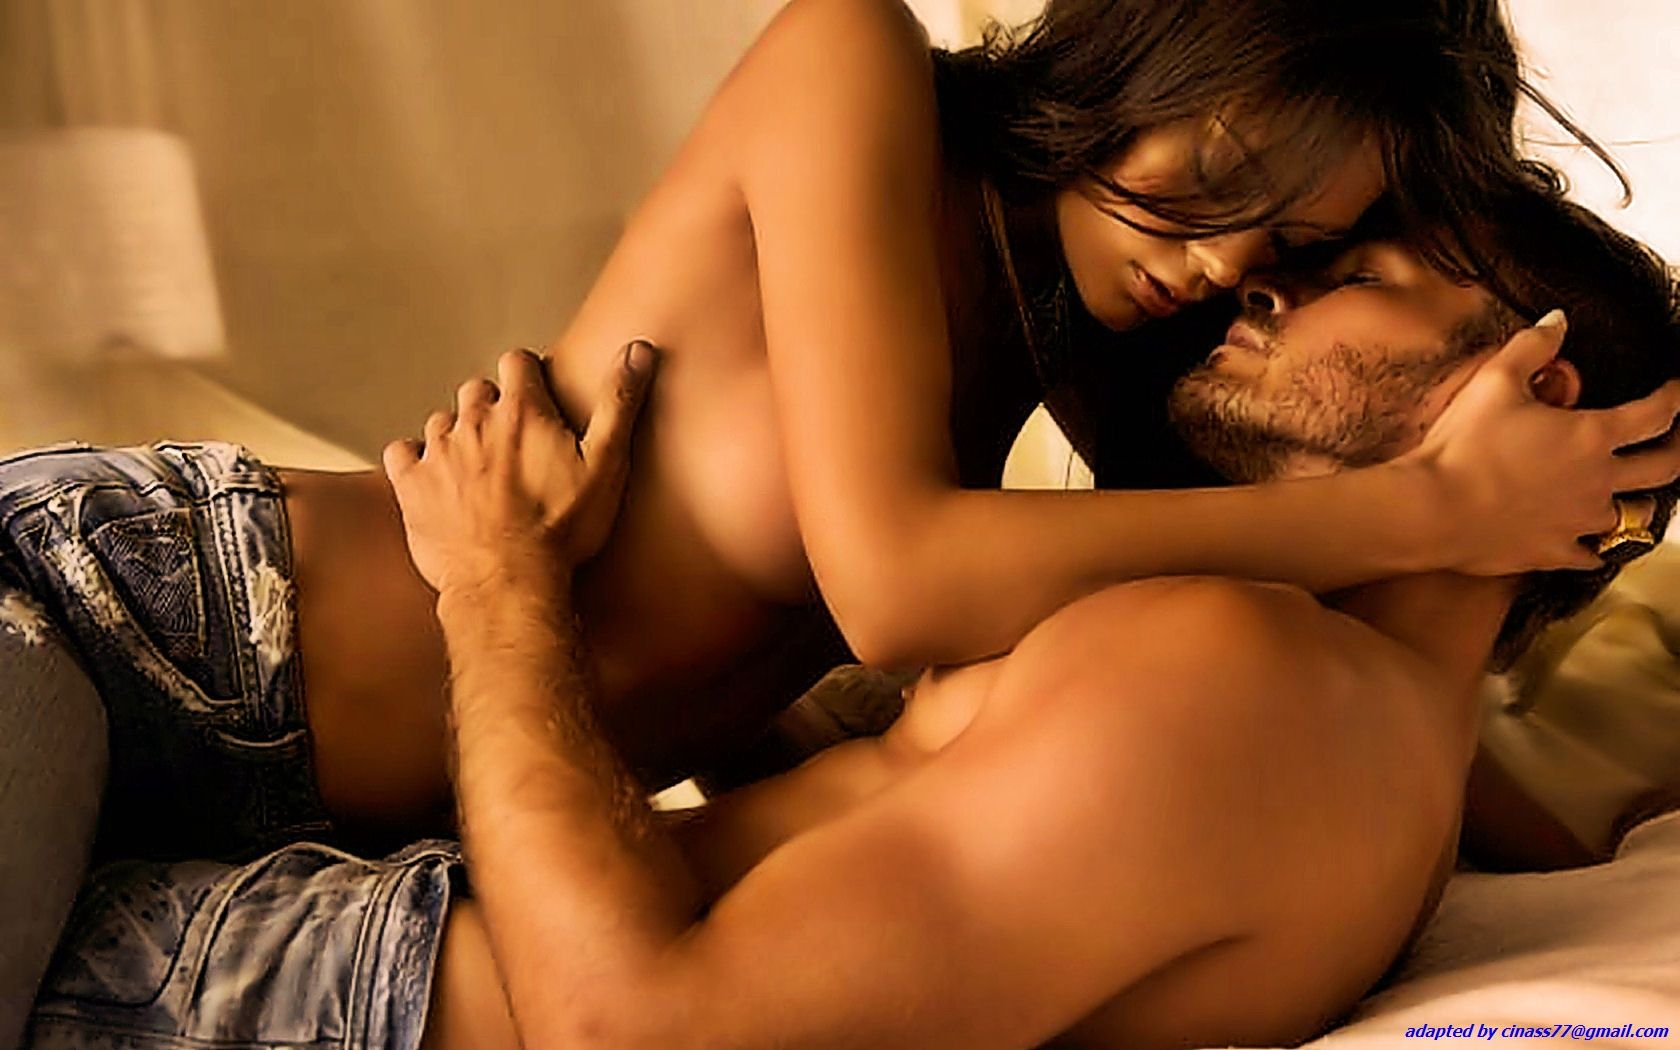 Wet Horny Ebony Couple Going At It